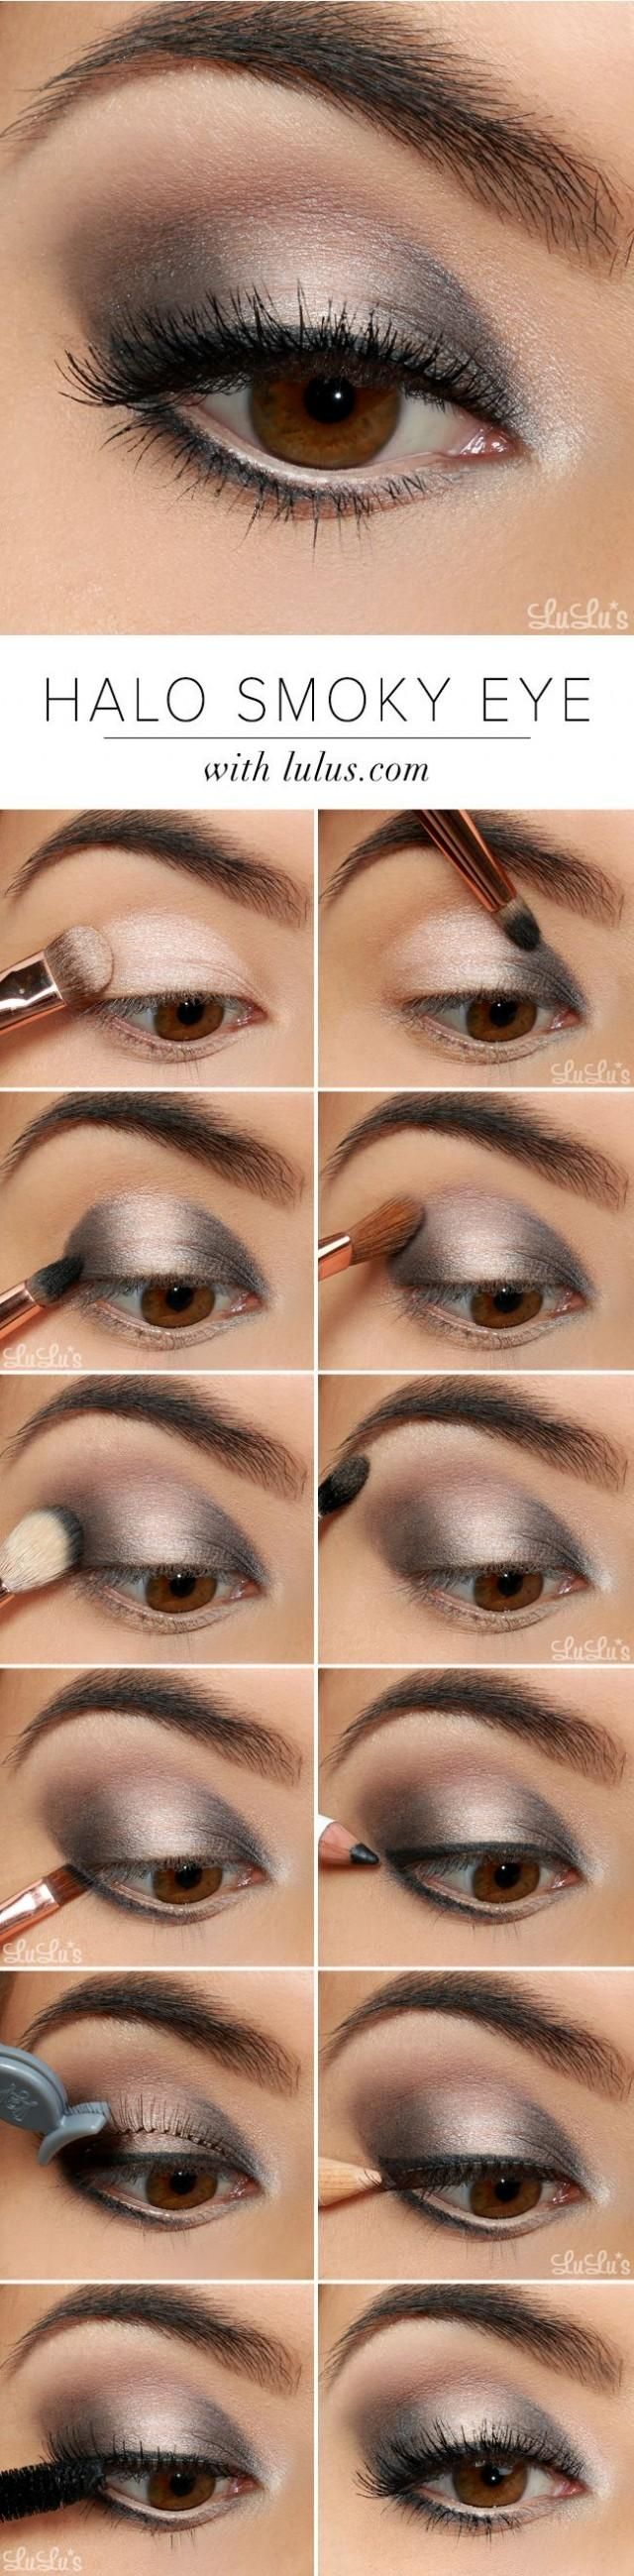 Weddbook is a content discovery engine mostly specialized on wedding concept. You can collect images, videos or articles you discovered organize them, add your own ideas to your collections and share with other people | Step up your smokey eye game just in time for all of your holiday festivities with our Halo Smokey Eye Shadow Tutorial! Our full tutorial is on the blog! #articlesblog